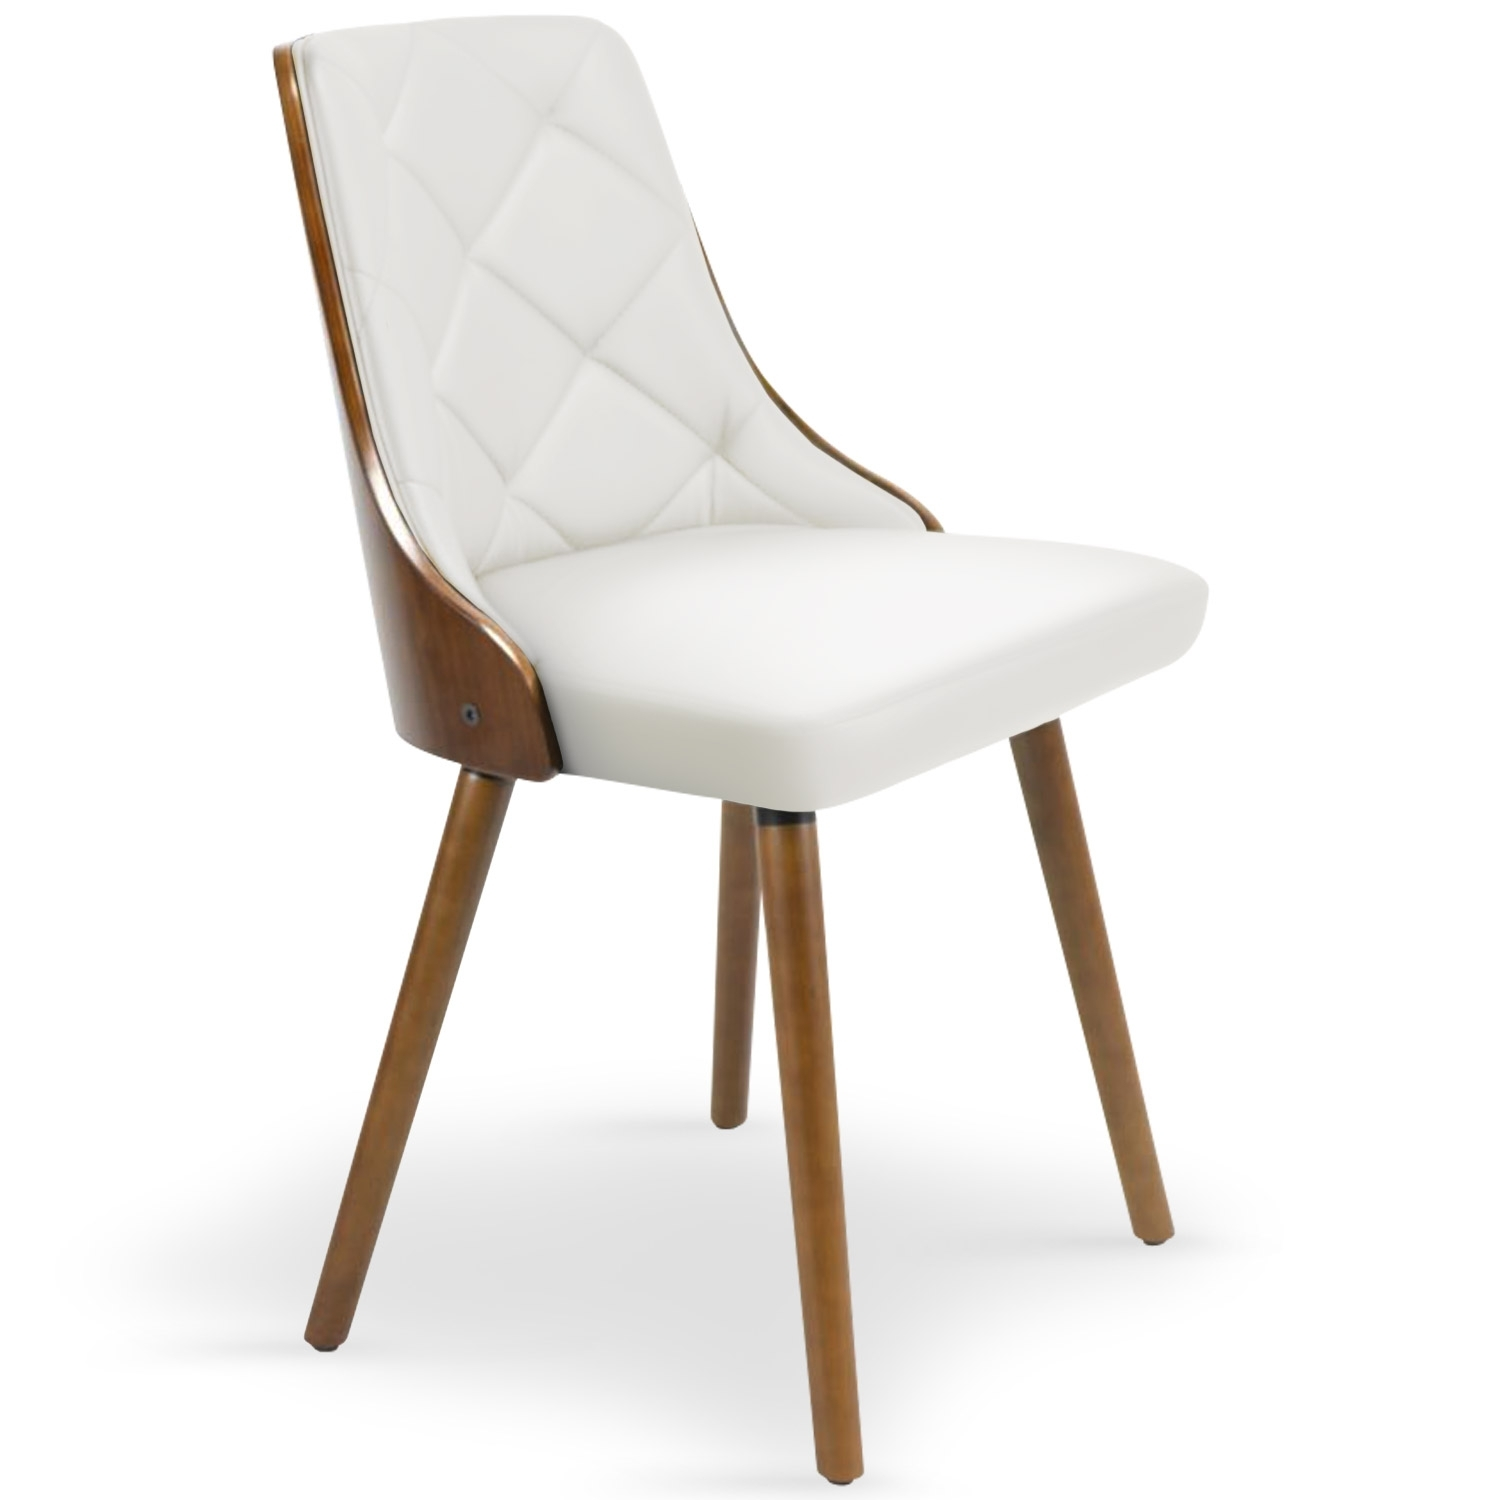 Chaise scandinave bois noisette et blanc pako for Chaise cuir blanc